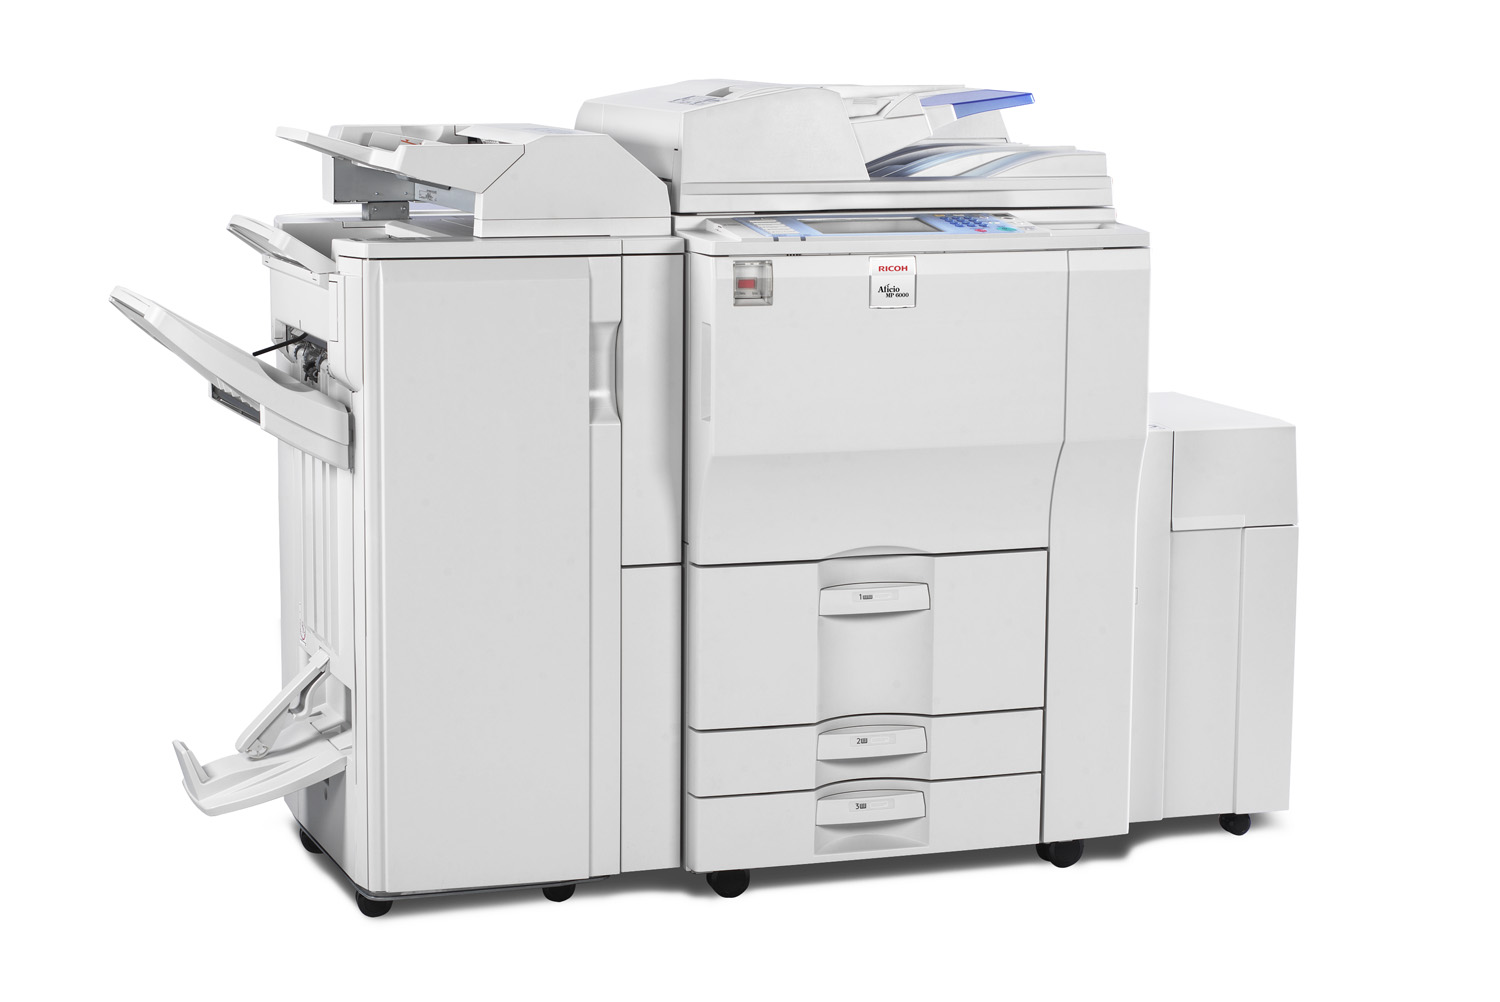 Ricoh Multifunctional Products